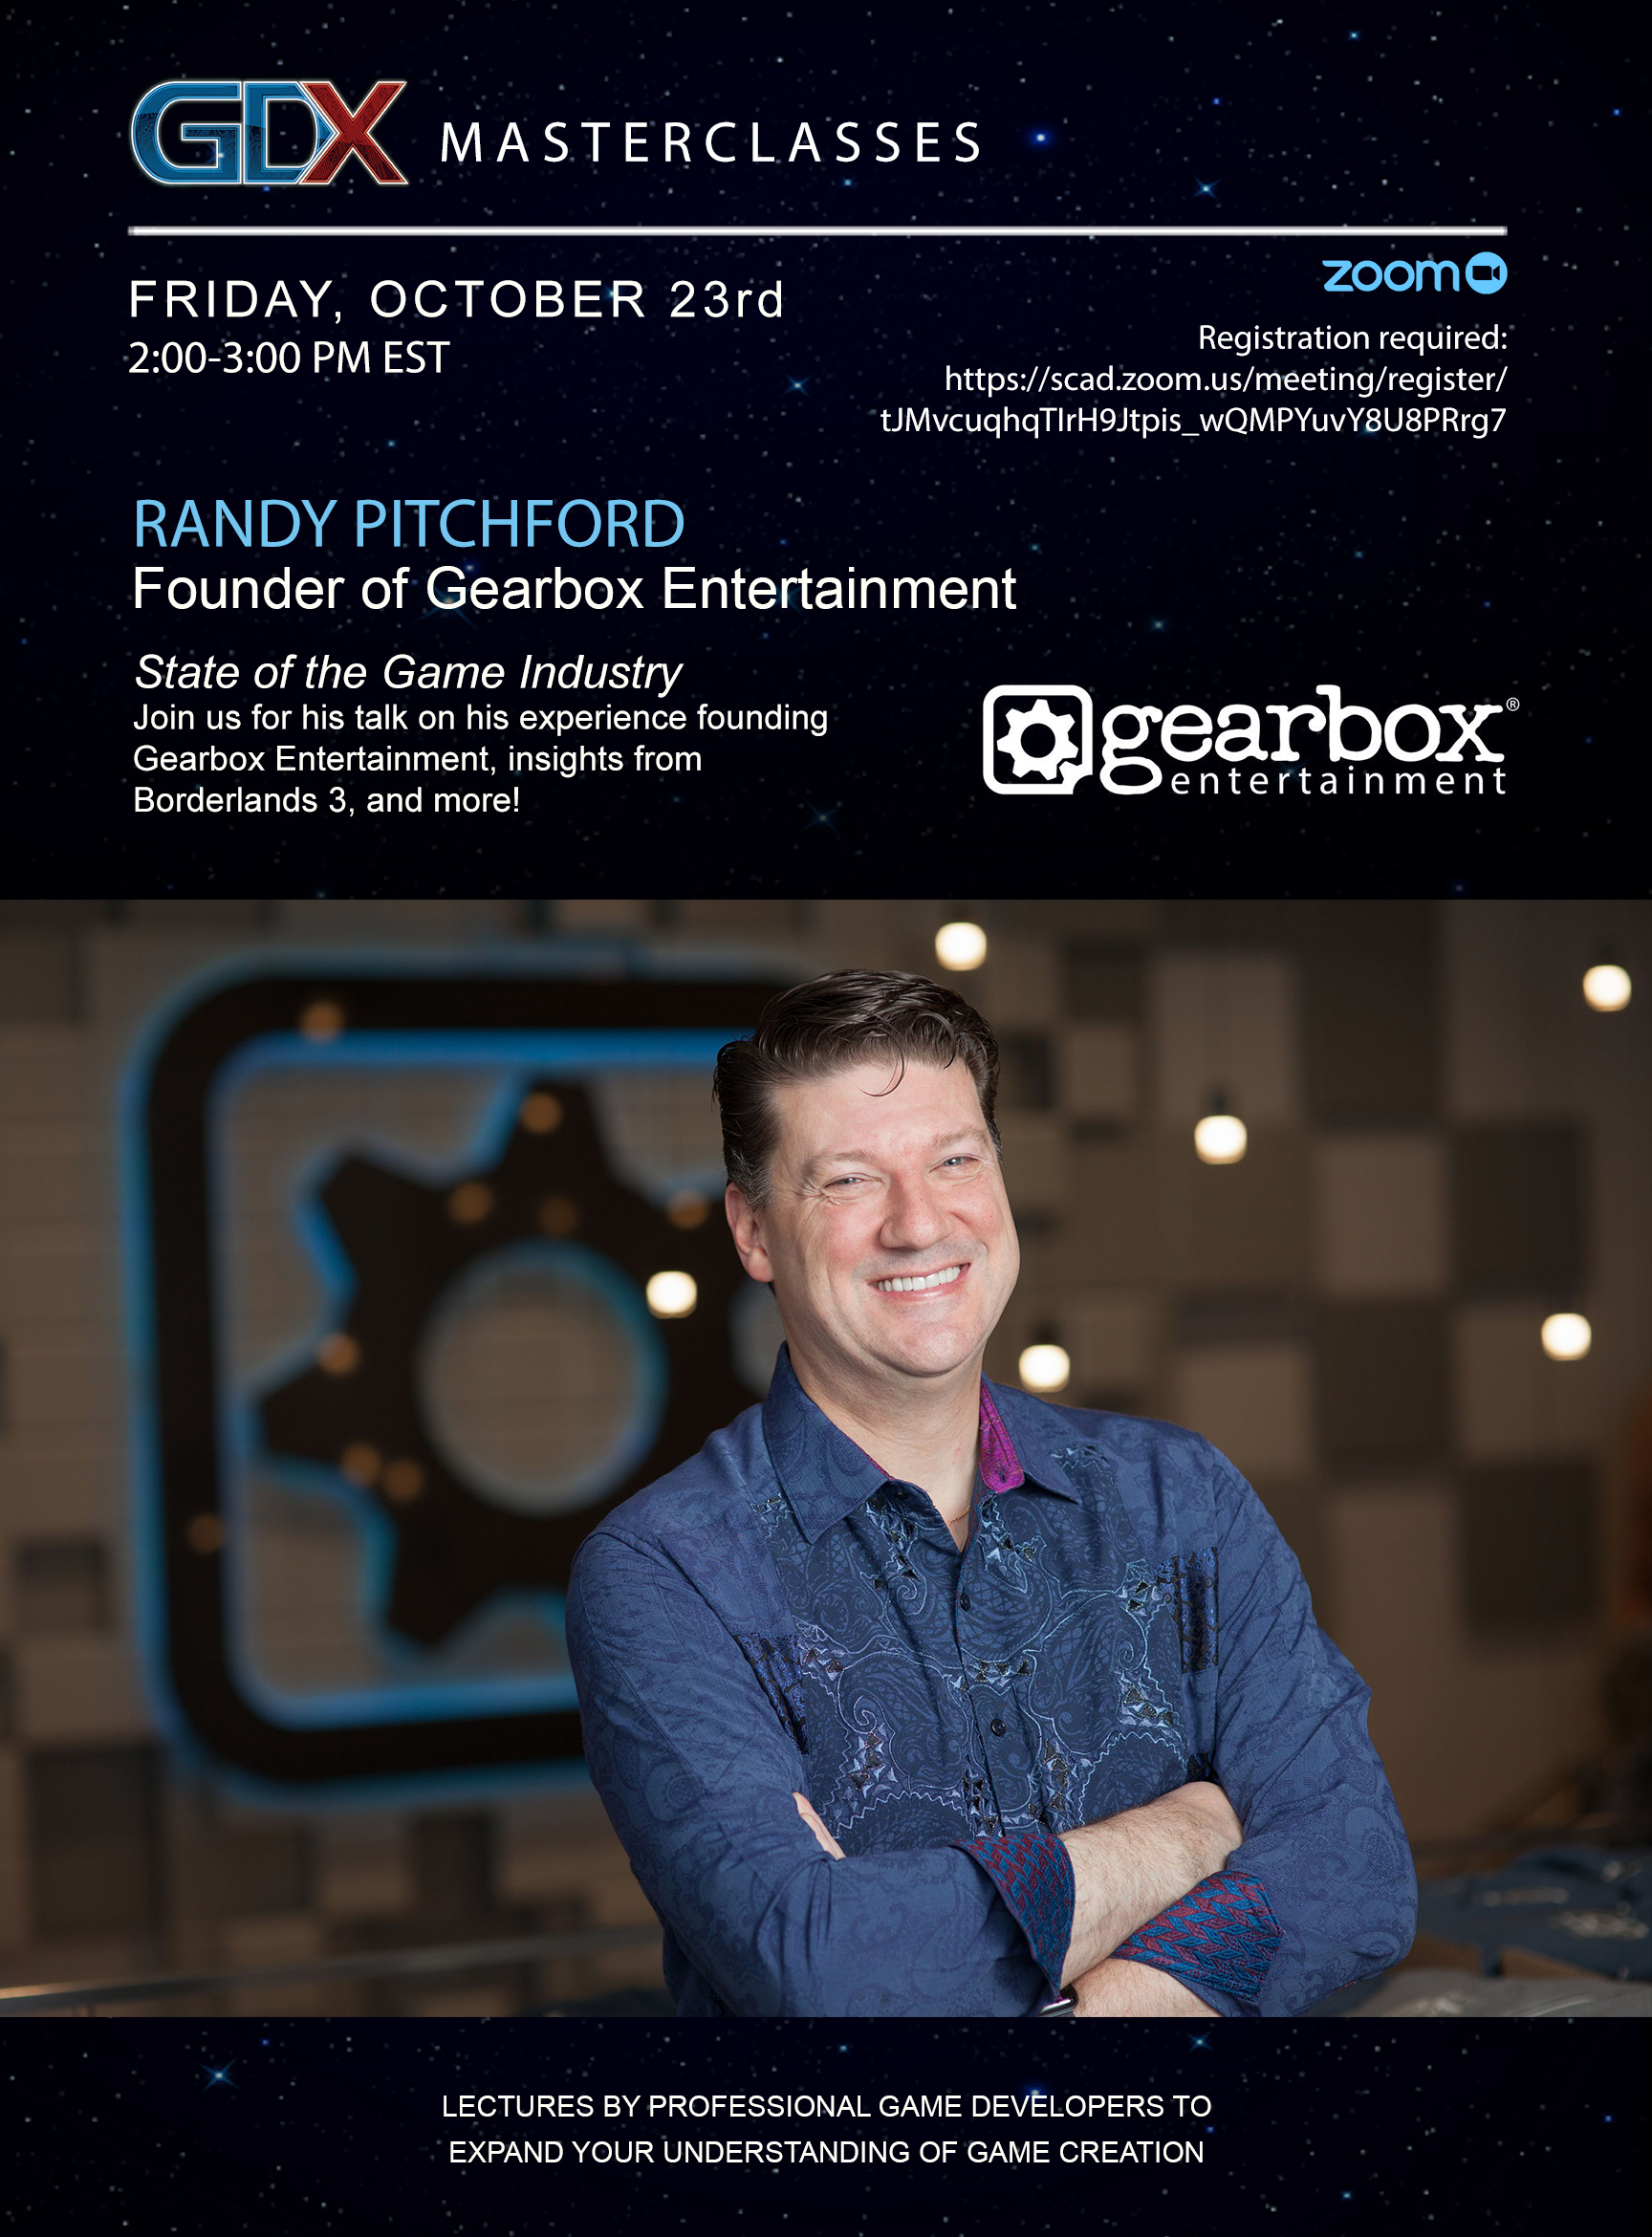 GDX Masterclasses presents – Randy Pitchford